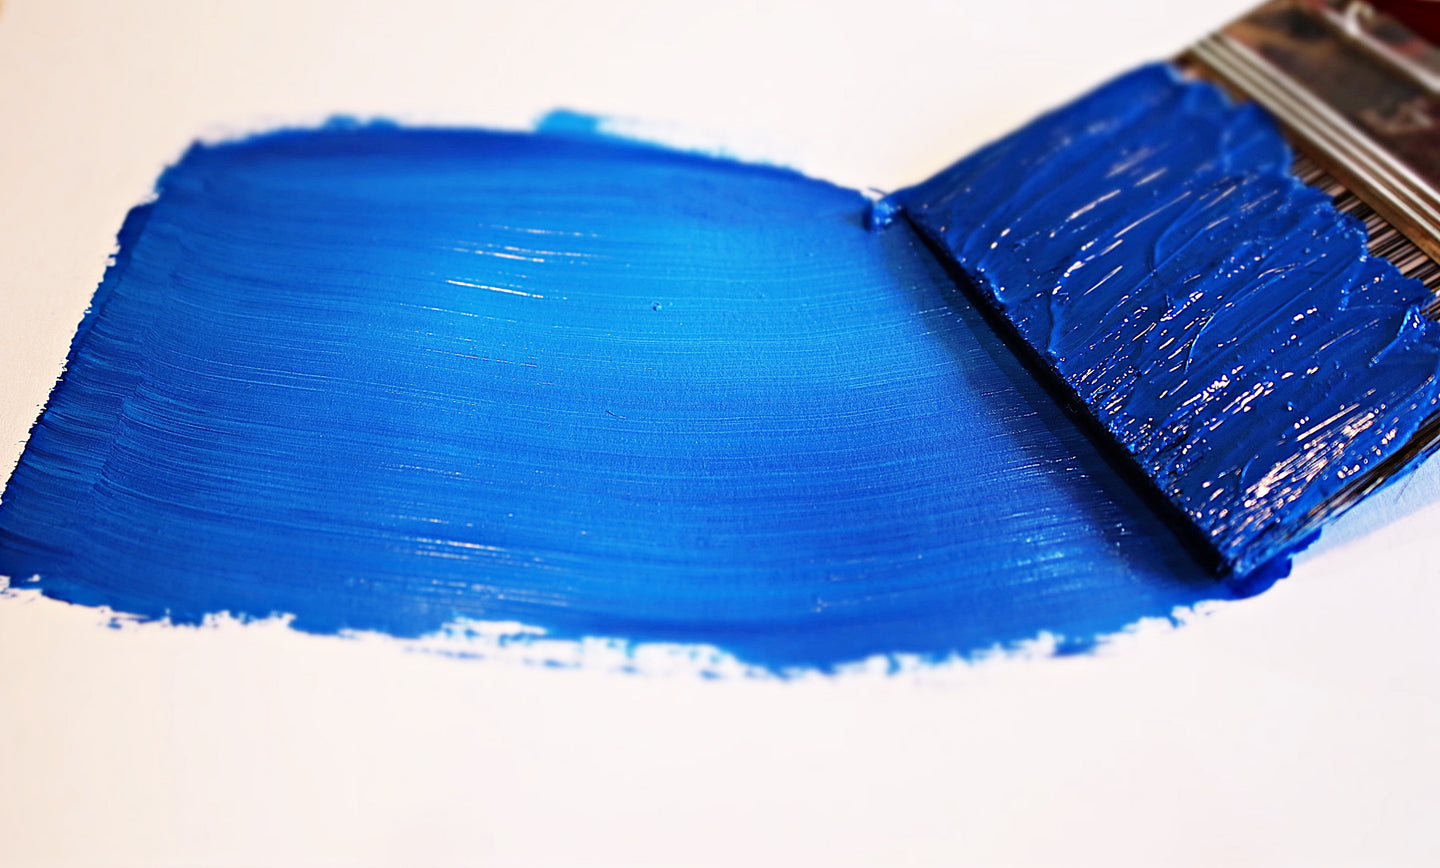 Image of paint brush making a brush stroke of blue paint